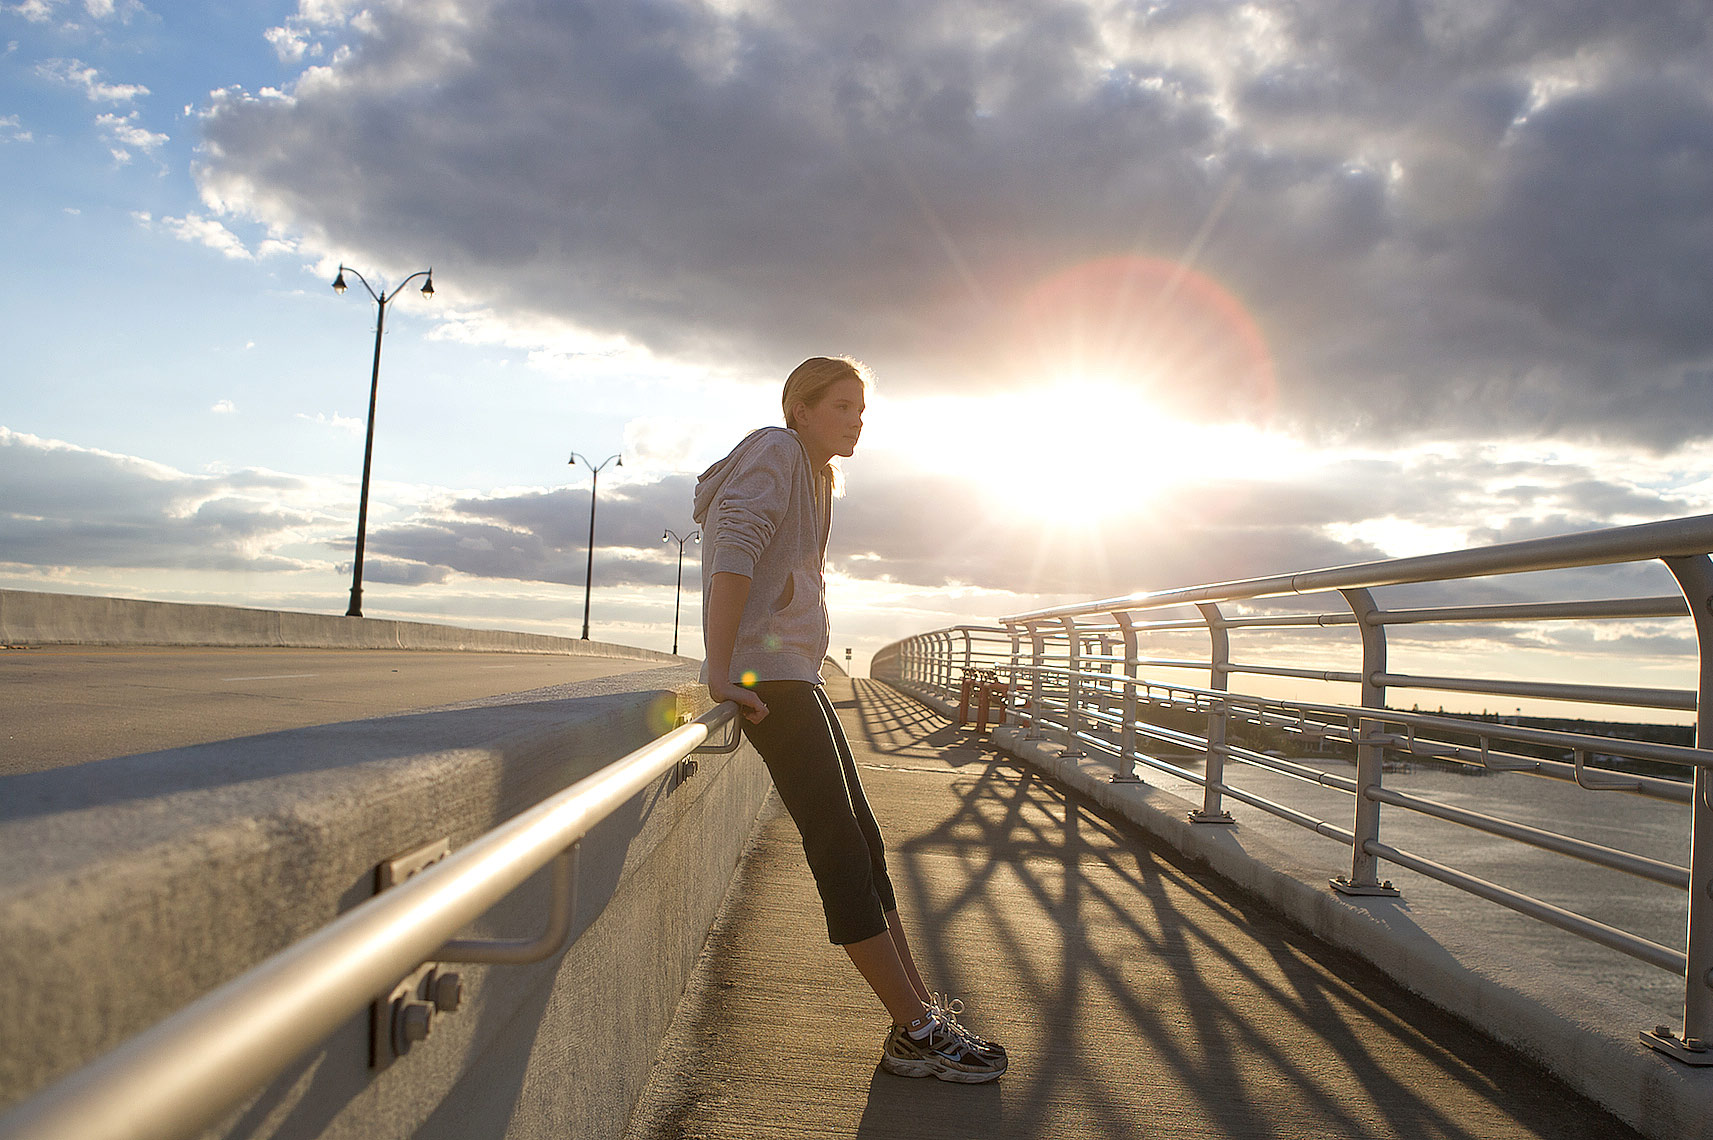 _Y0U8131_Robert_Holland__teenage runner leaning against bridge railing, resting with sunset and dramatic clouds